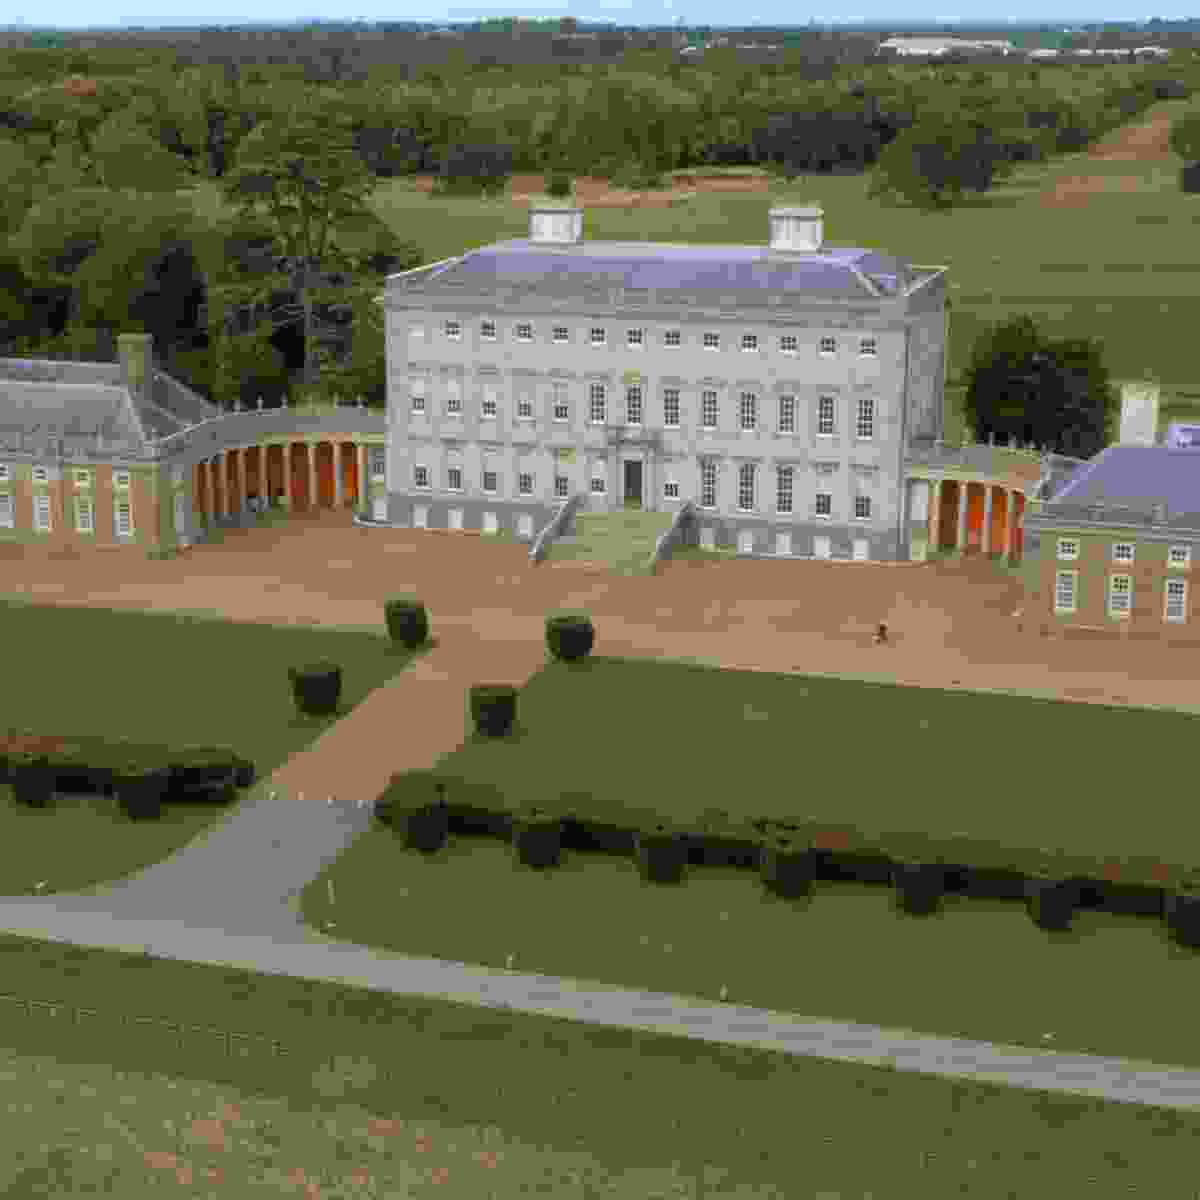 Castletown House (Macmillan Media)